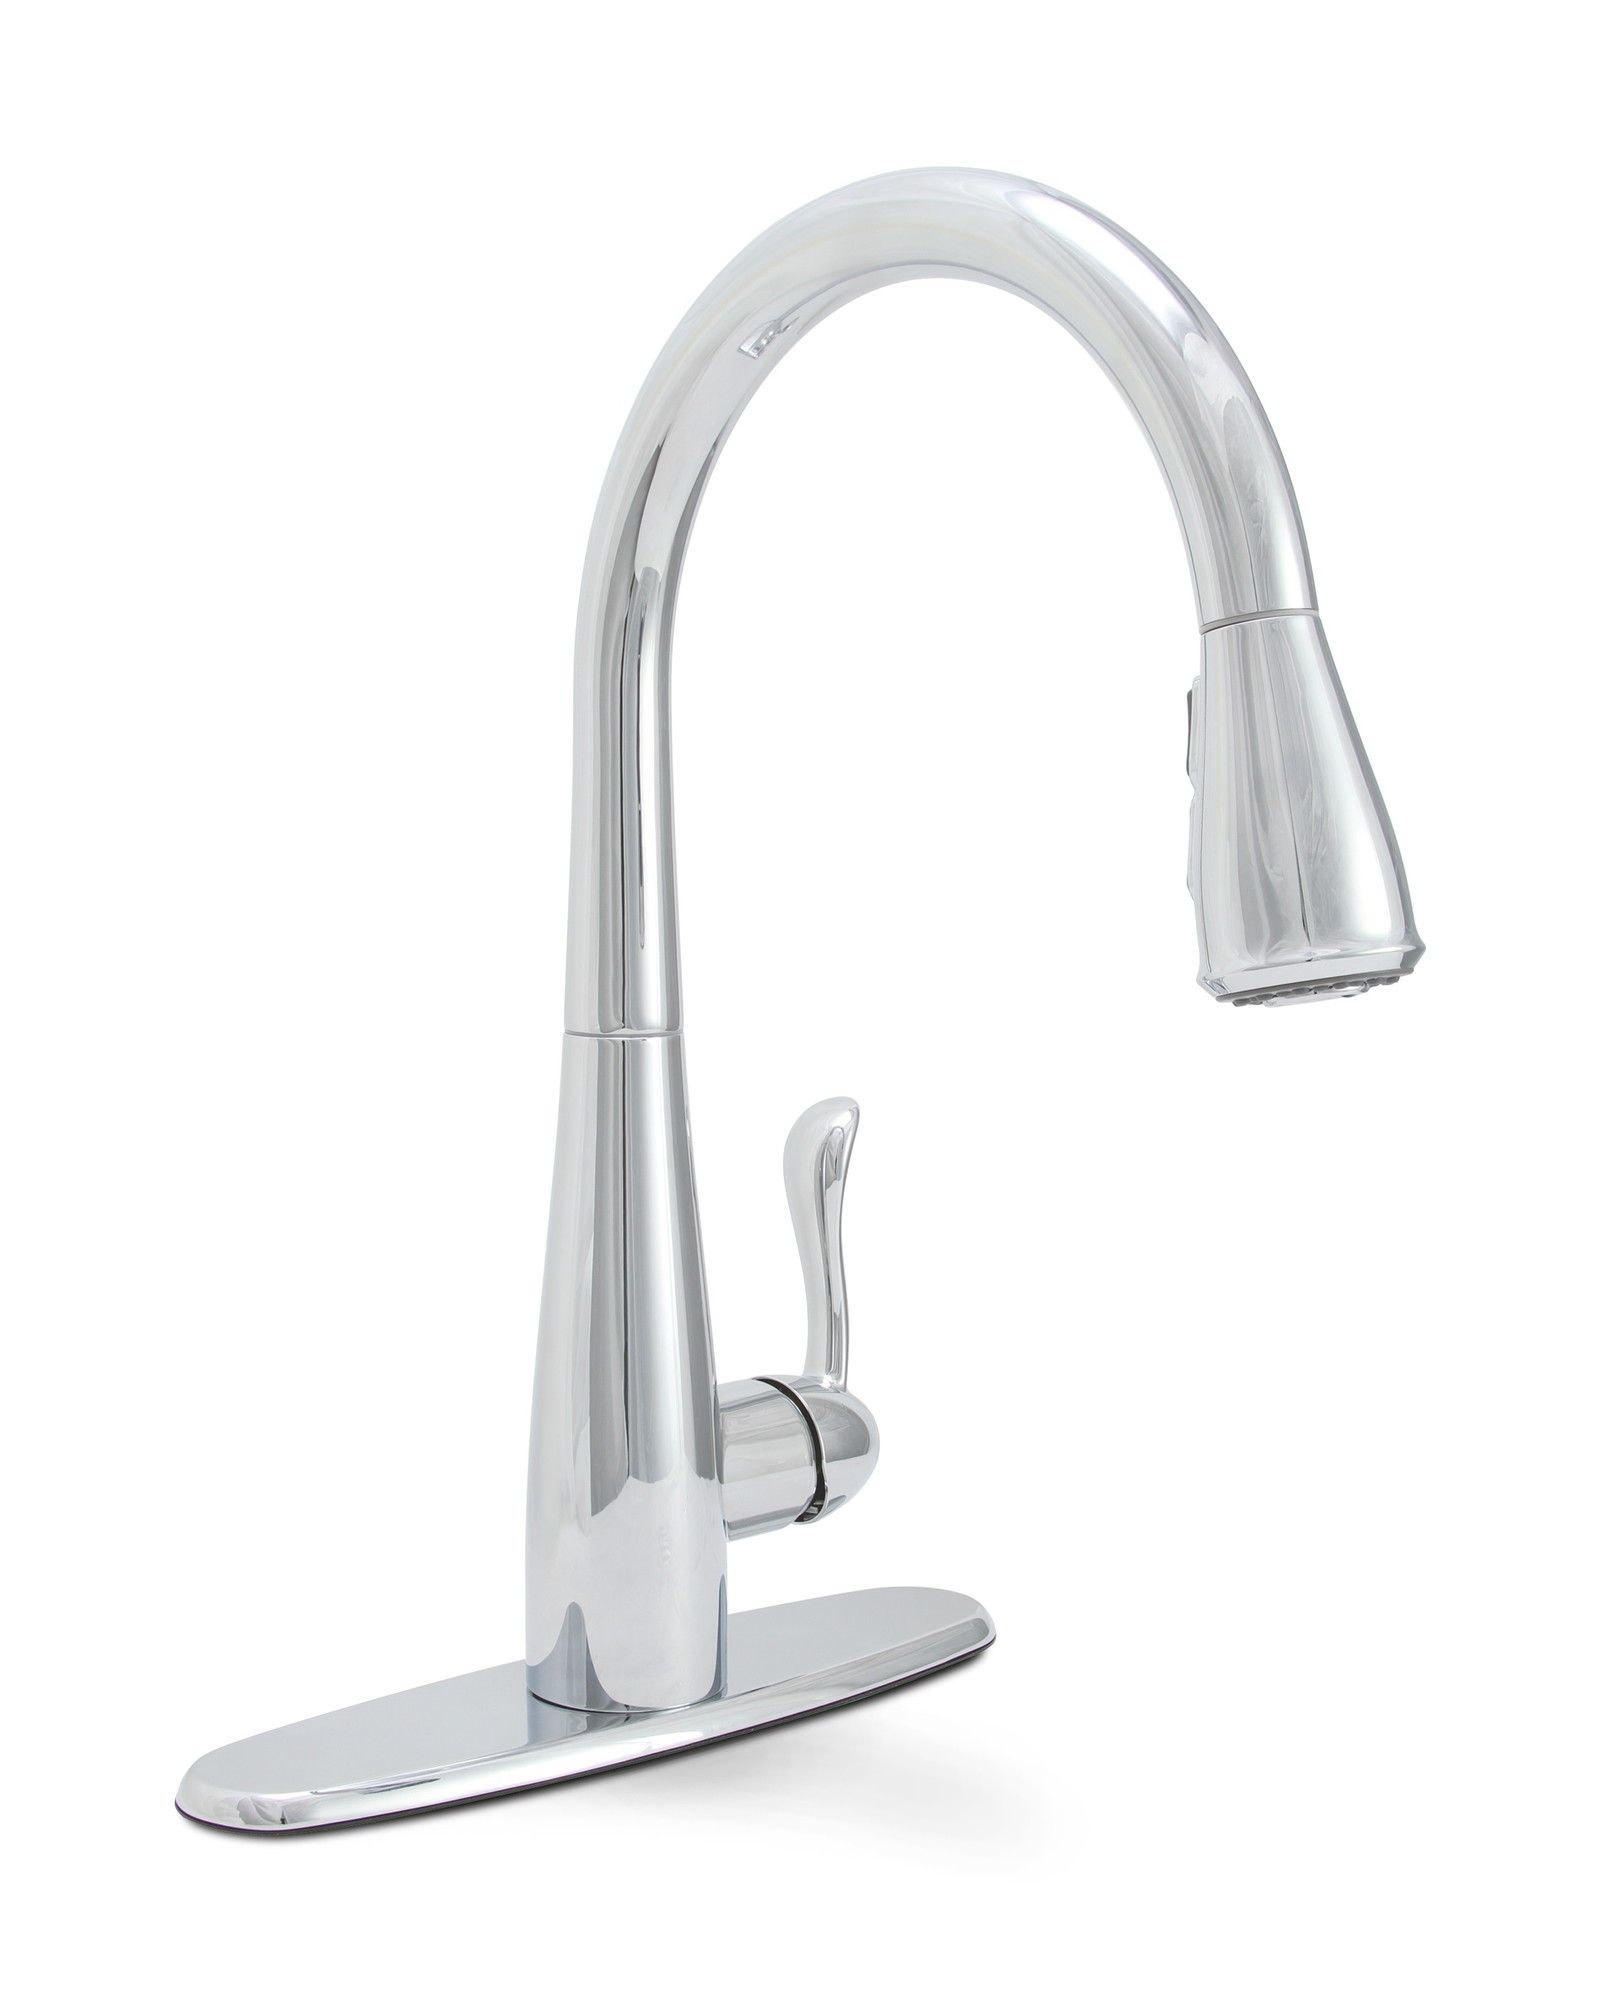 sanibel single handle pull down kitchen faucet products rh za pinterest com